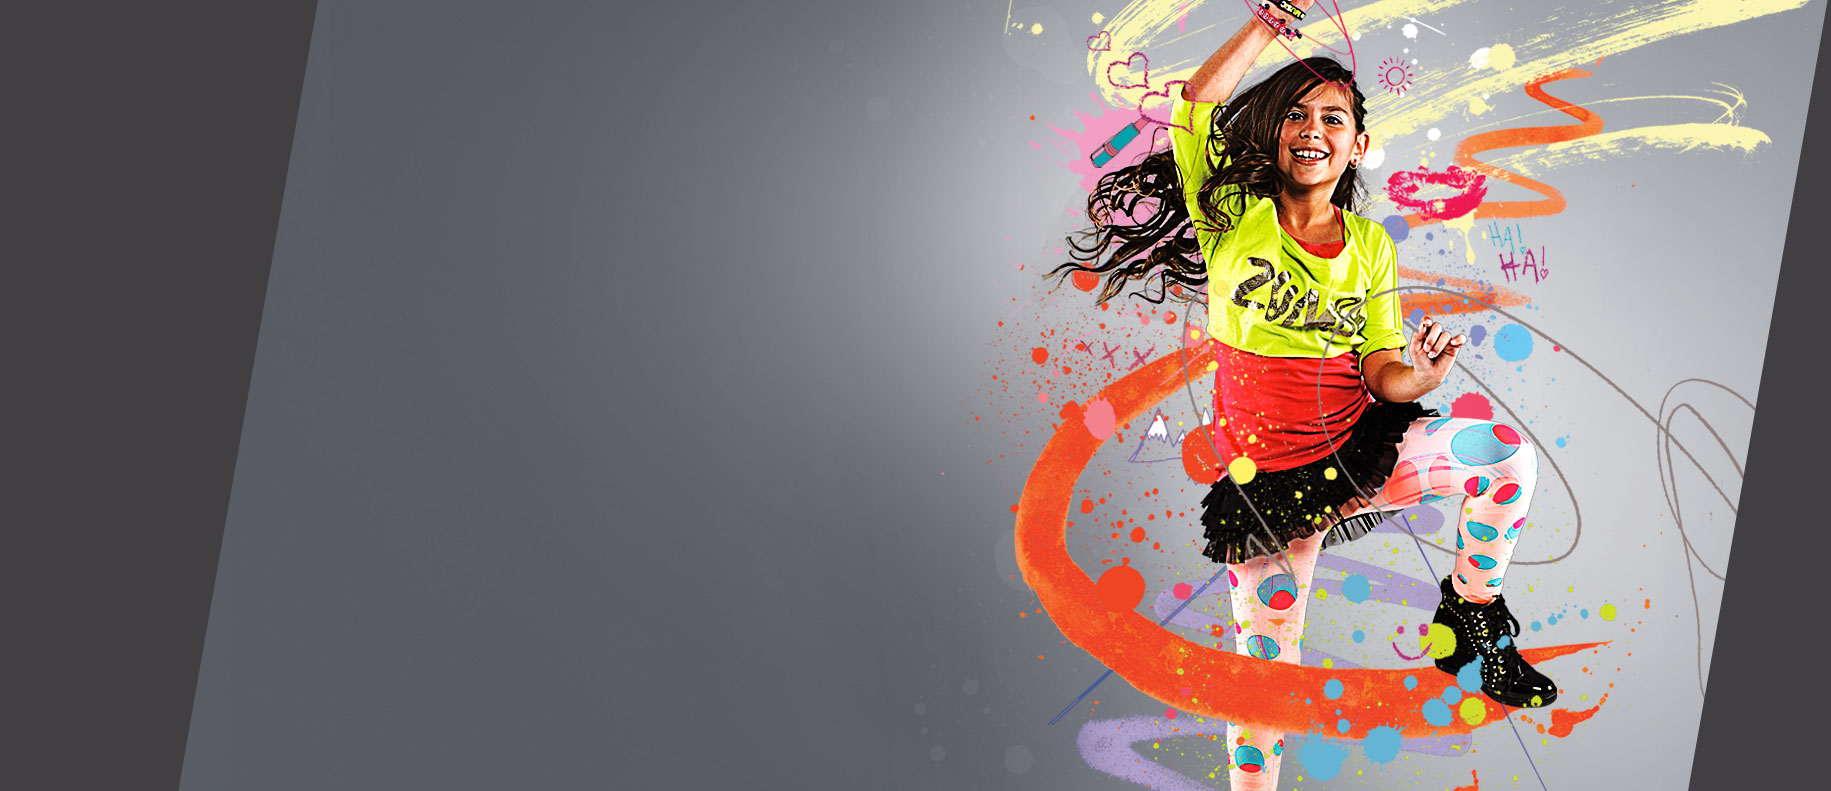 Cute Live Wallpaper For Android Mobile Download Zumba Dance Wallpaper Gallery